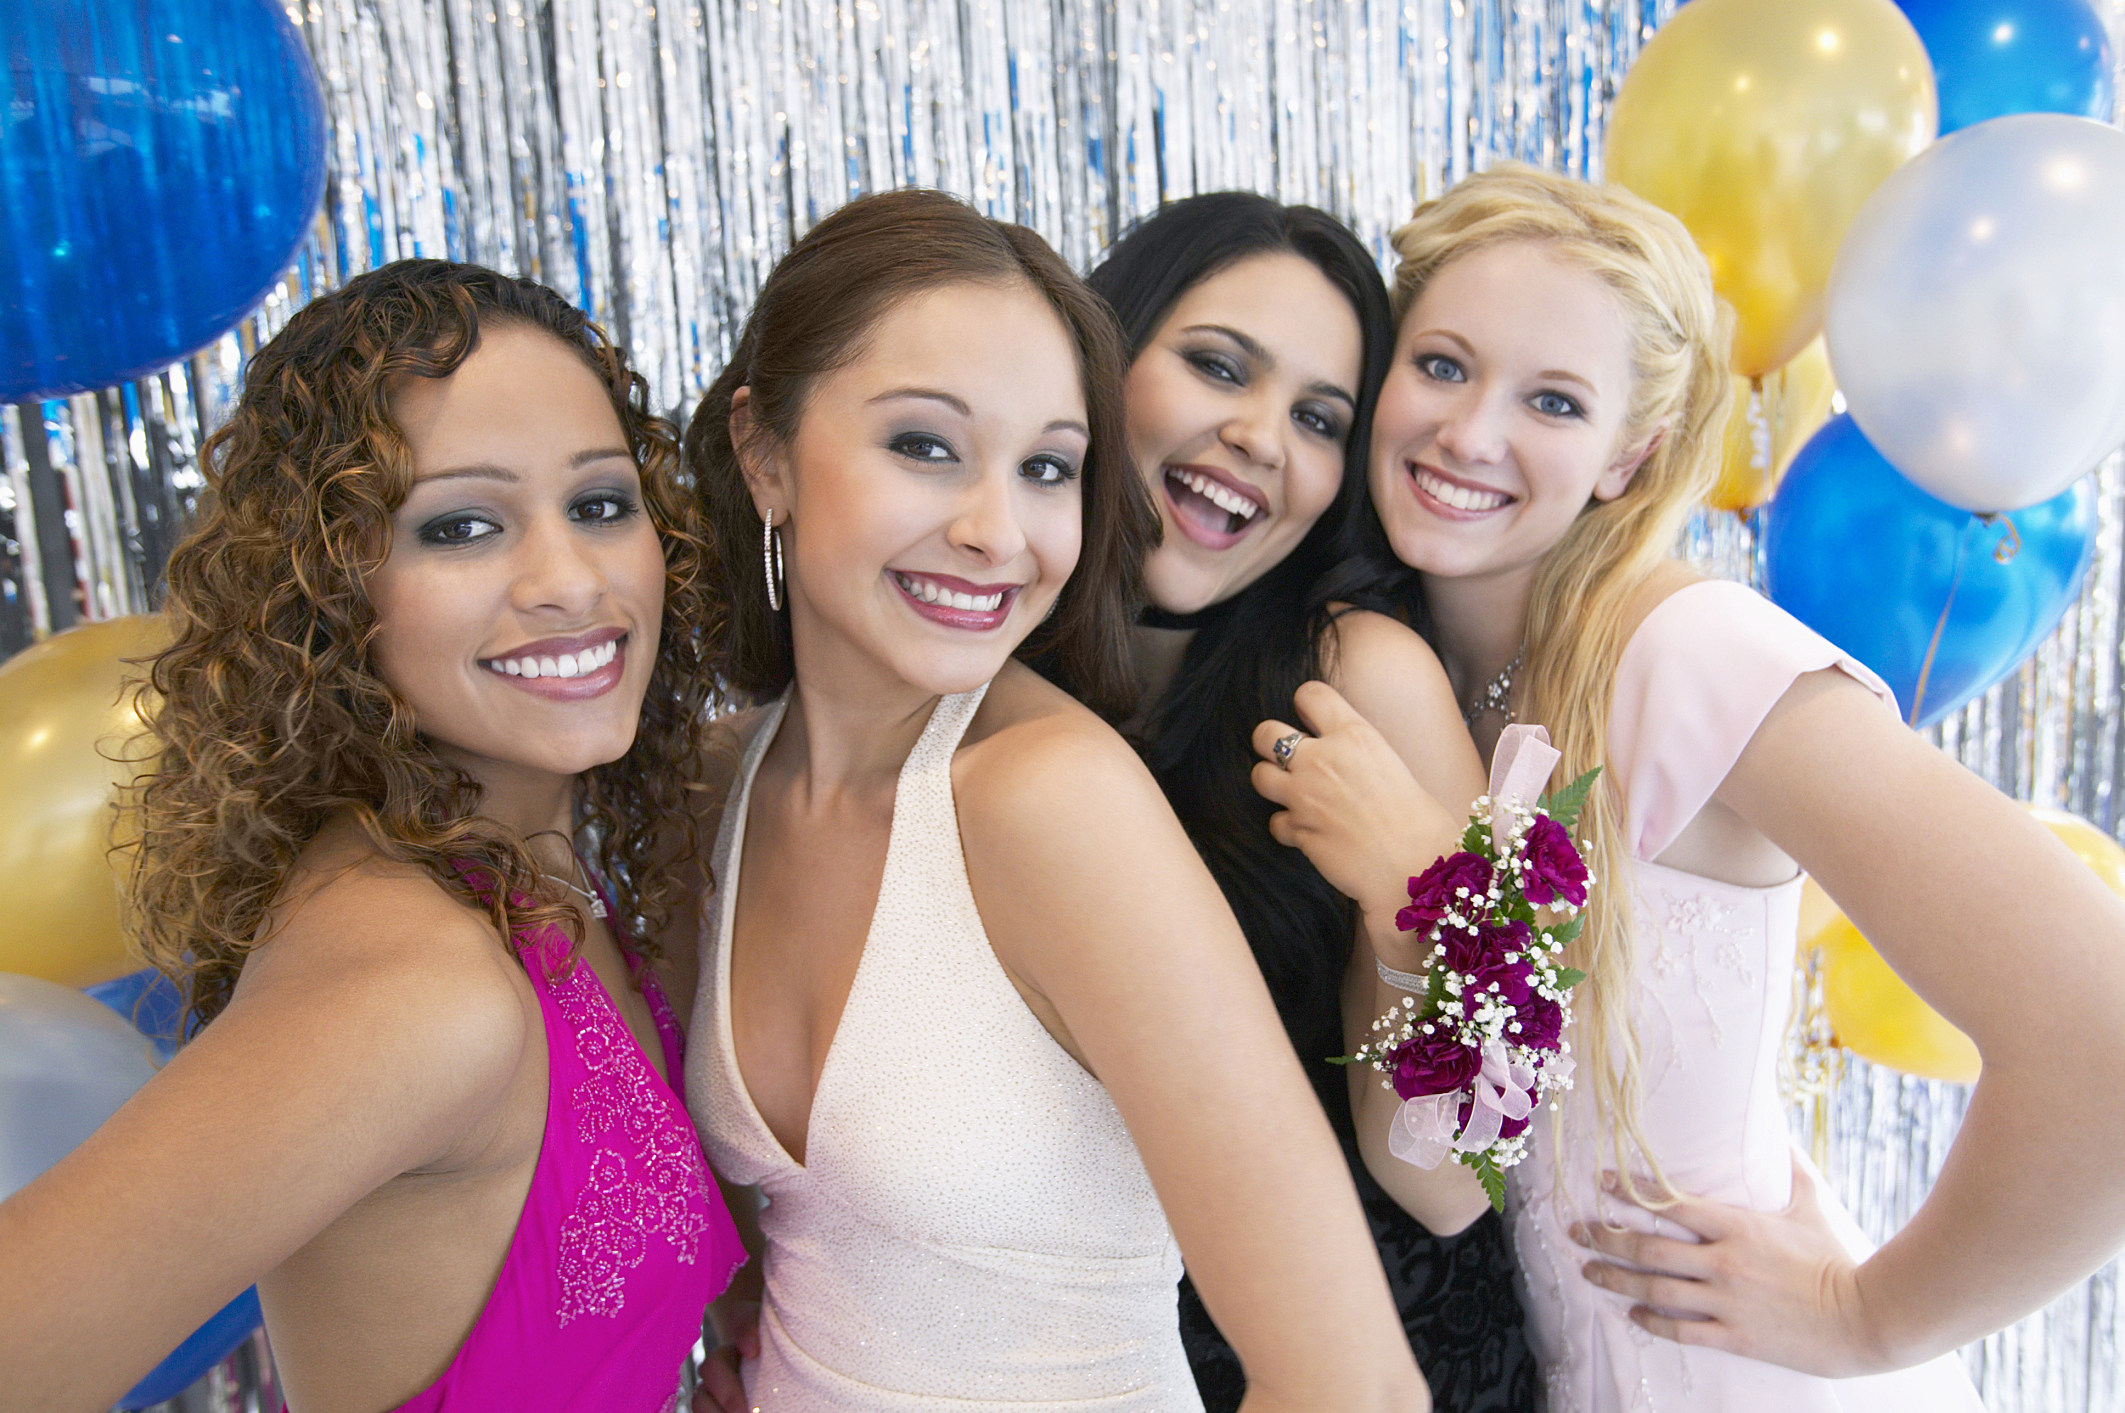 Best Places to Buy Prom Dresses in Shreveport and Bossier City